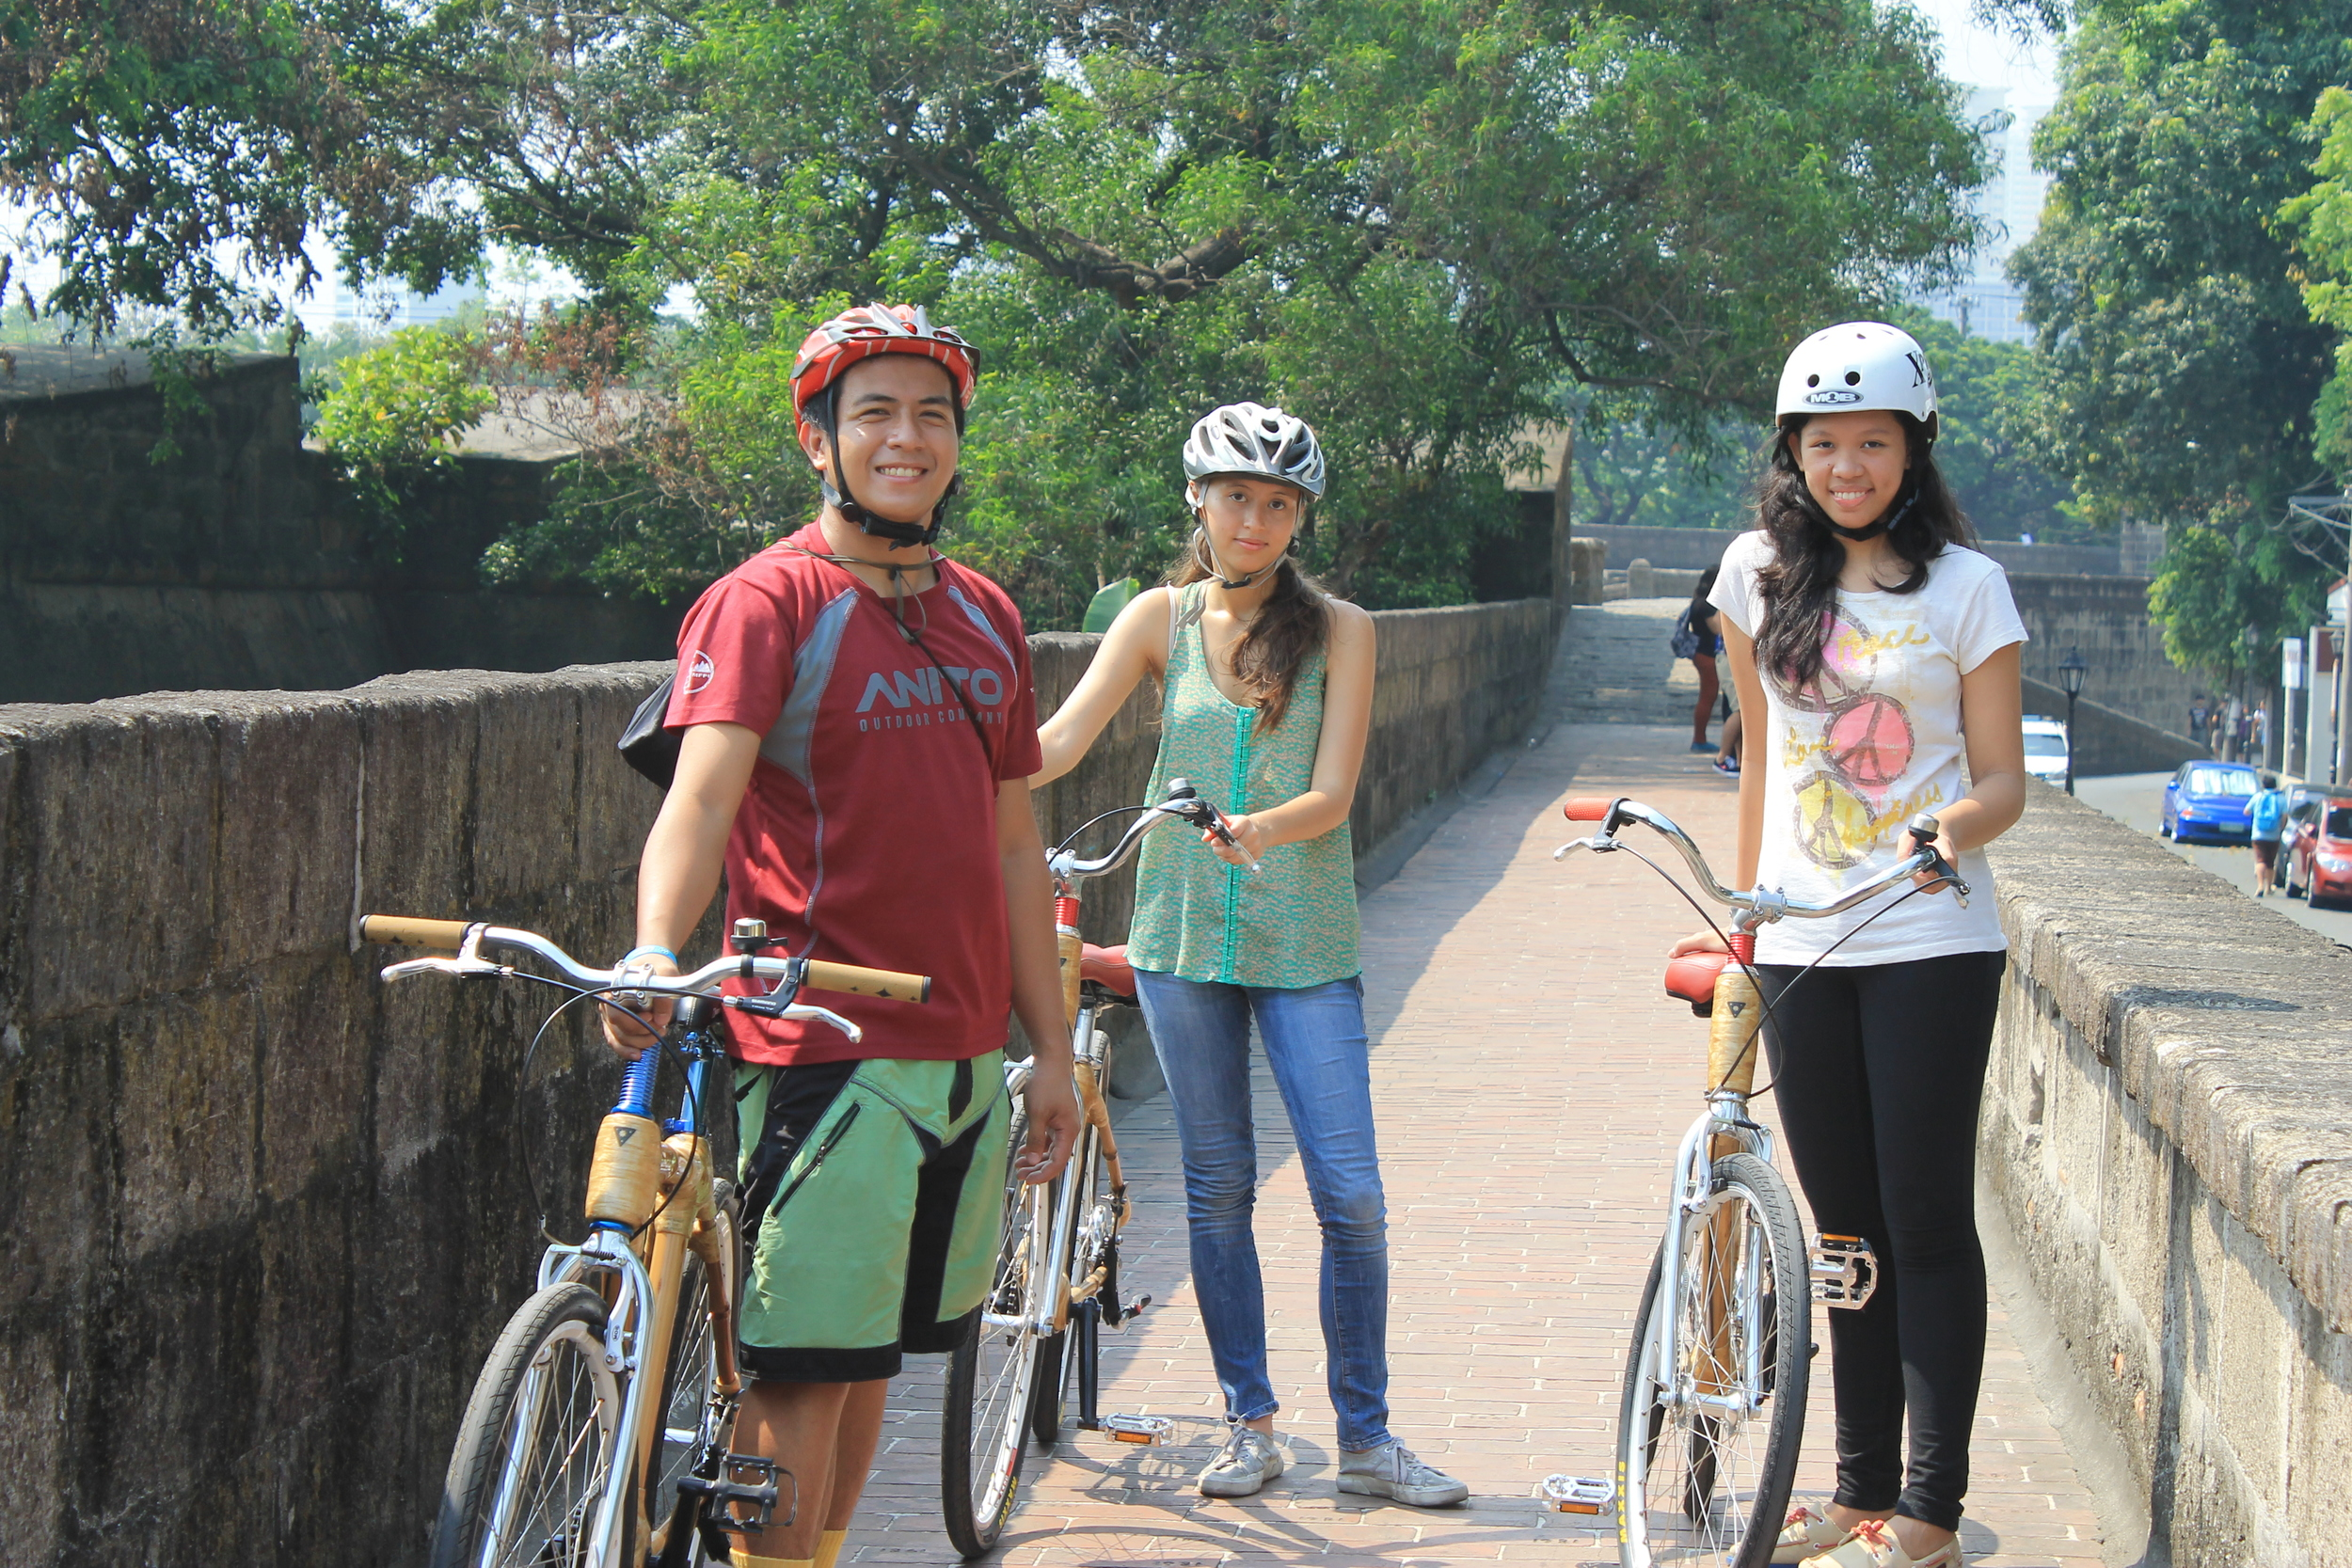 Bambike Intern Linet Dumag riding a company bicycles in the park with co-workers.